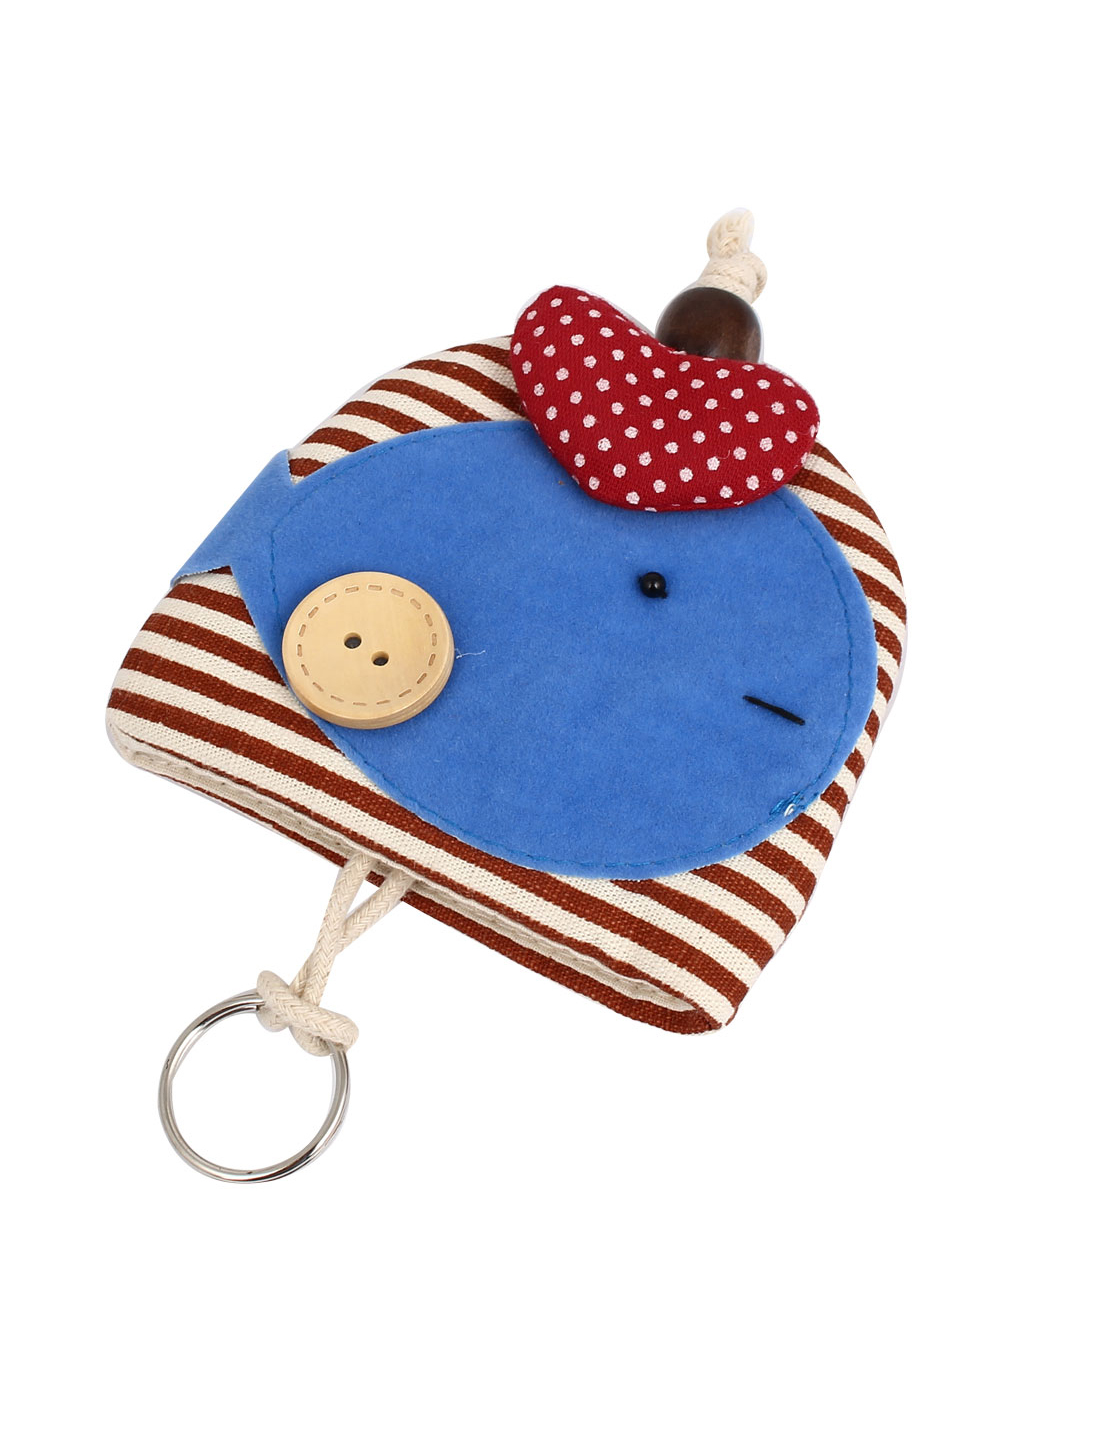 Lady Split Ring Strap Stripe Pattern Fish Decor Zip Up Coin Key Purse Bag Wallet Pouch